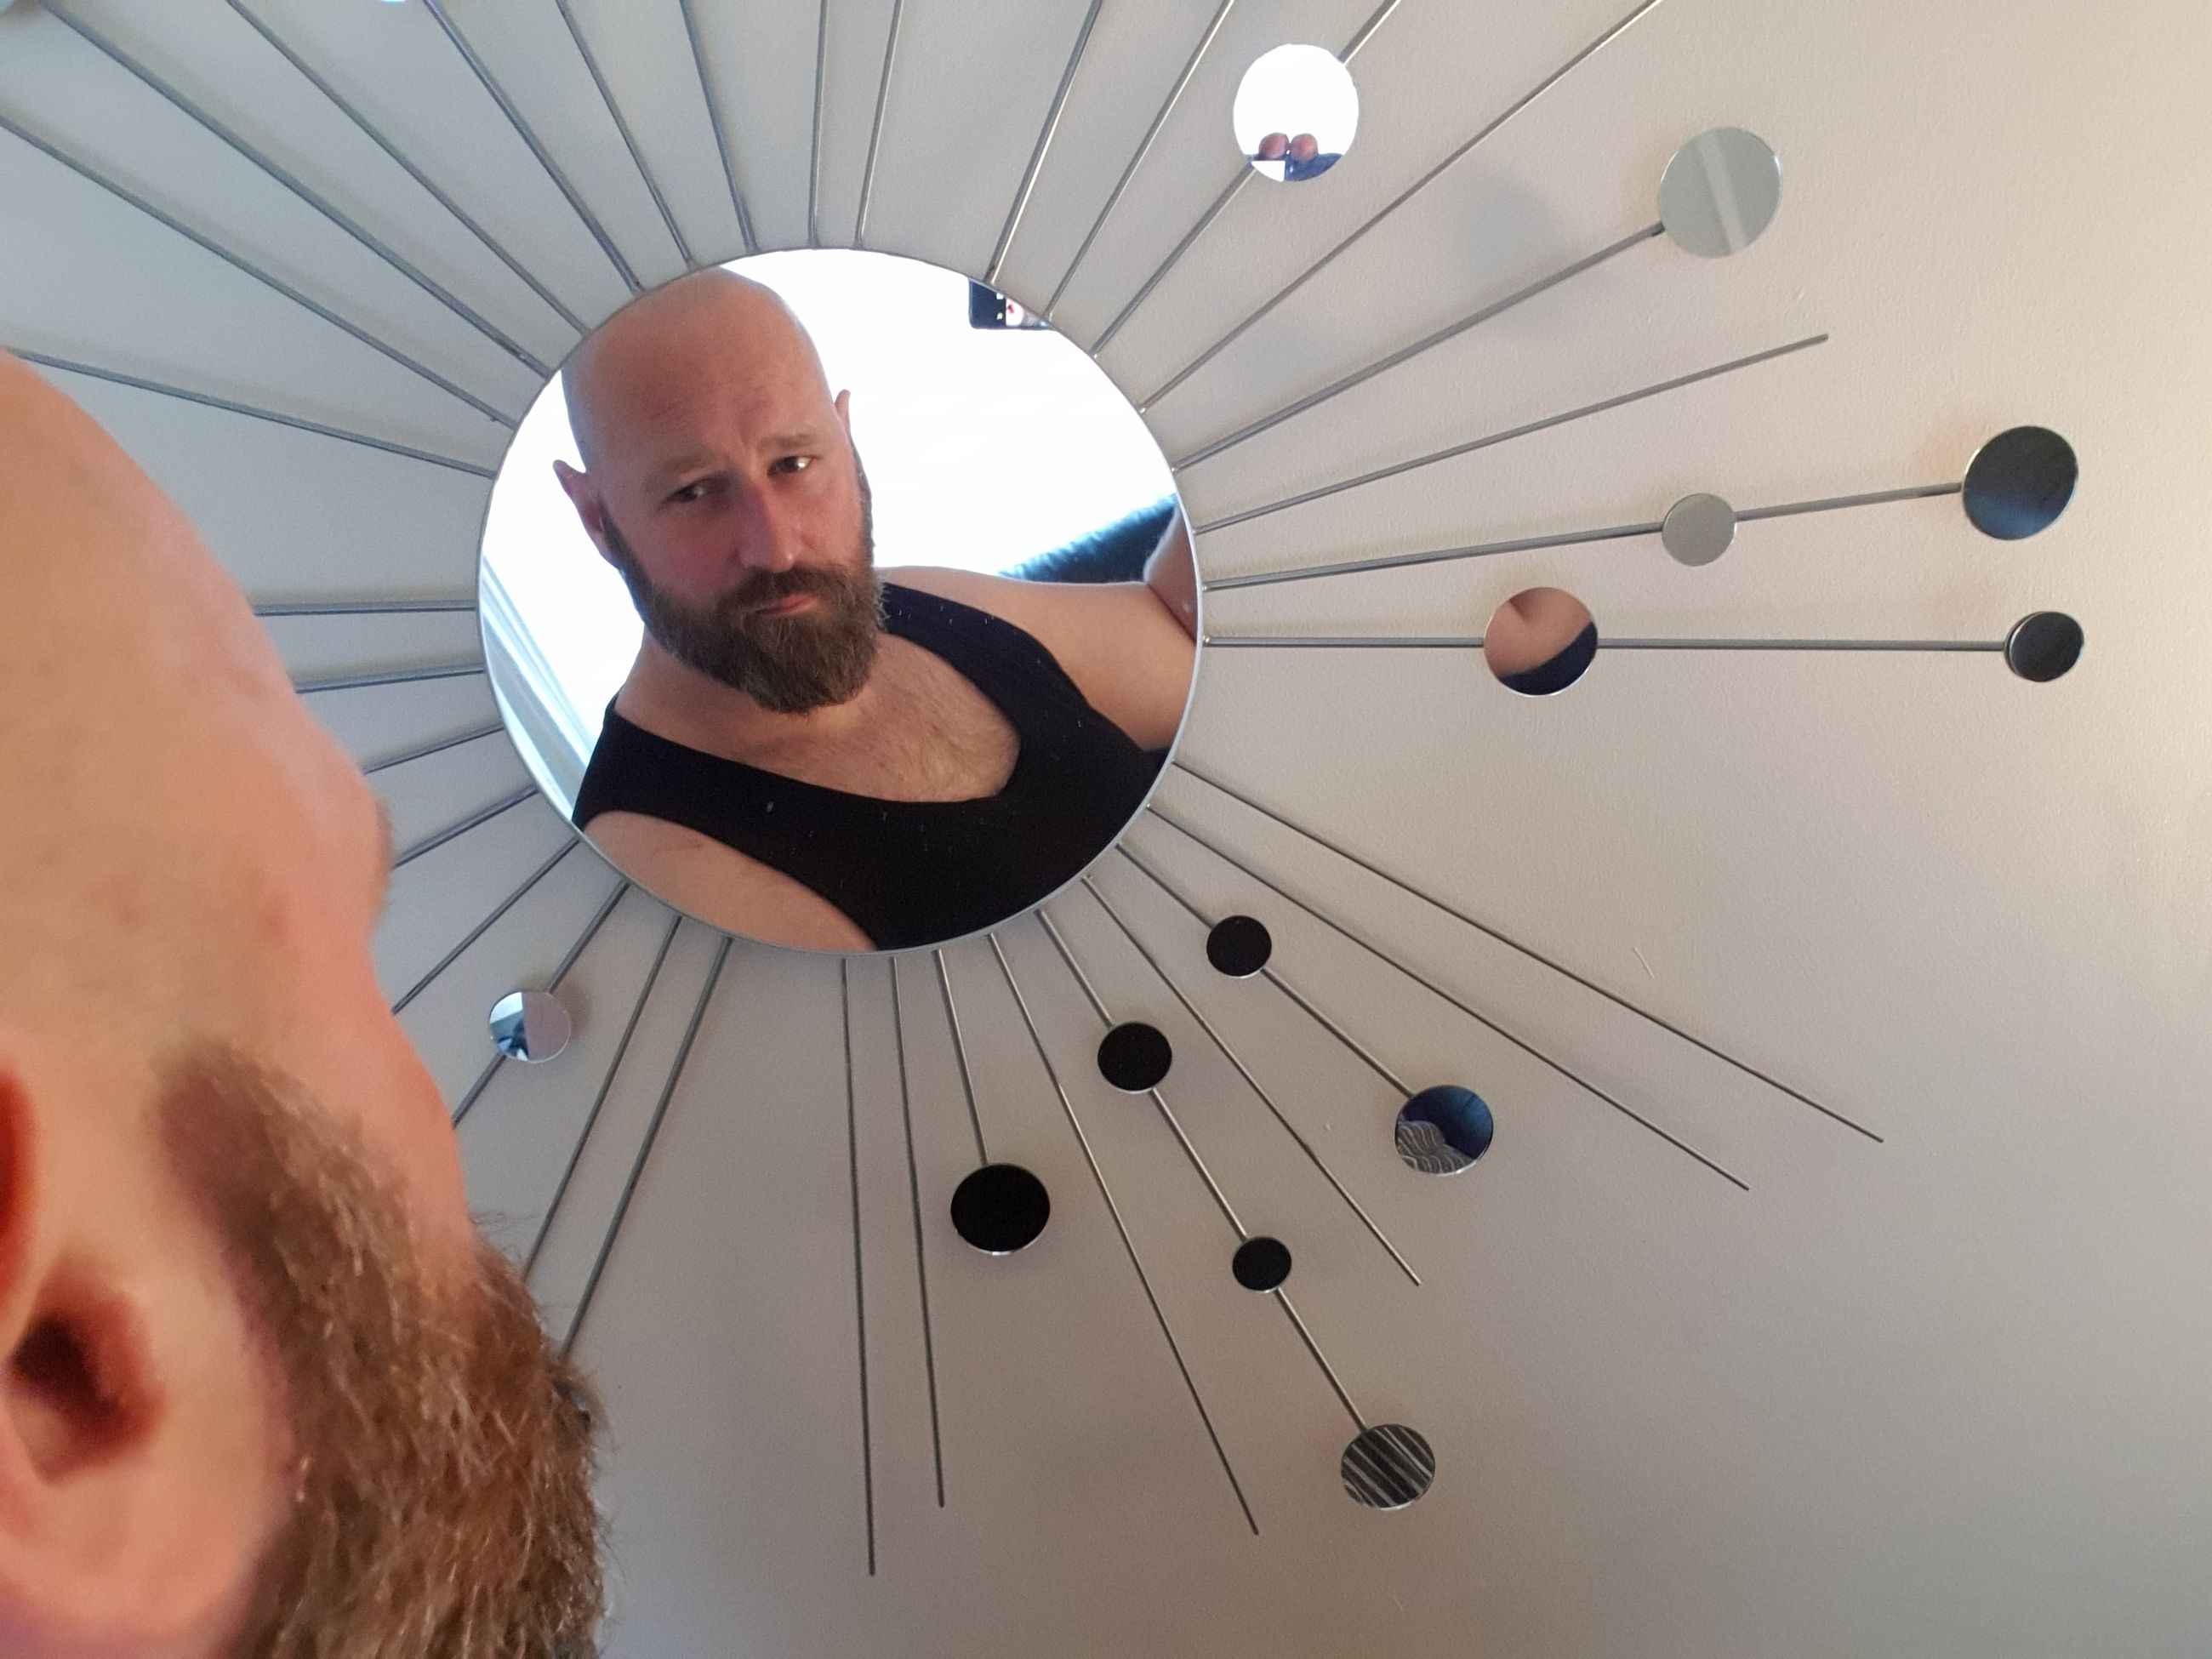 portrait, headshot, real people, one person, beard, leisure activity, indoors, facial hair, men, mid adult men, mid adult, lifestyles, males, adult, front view, young adult, young men, ceiling, human face, directly below